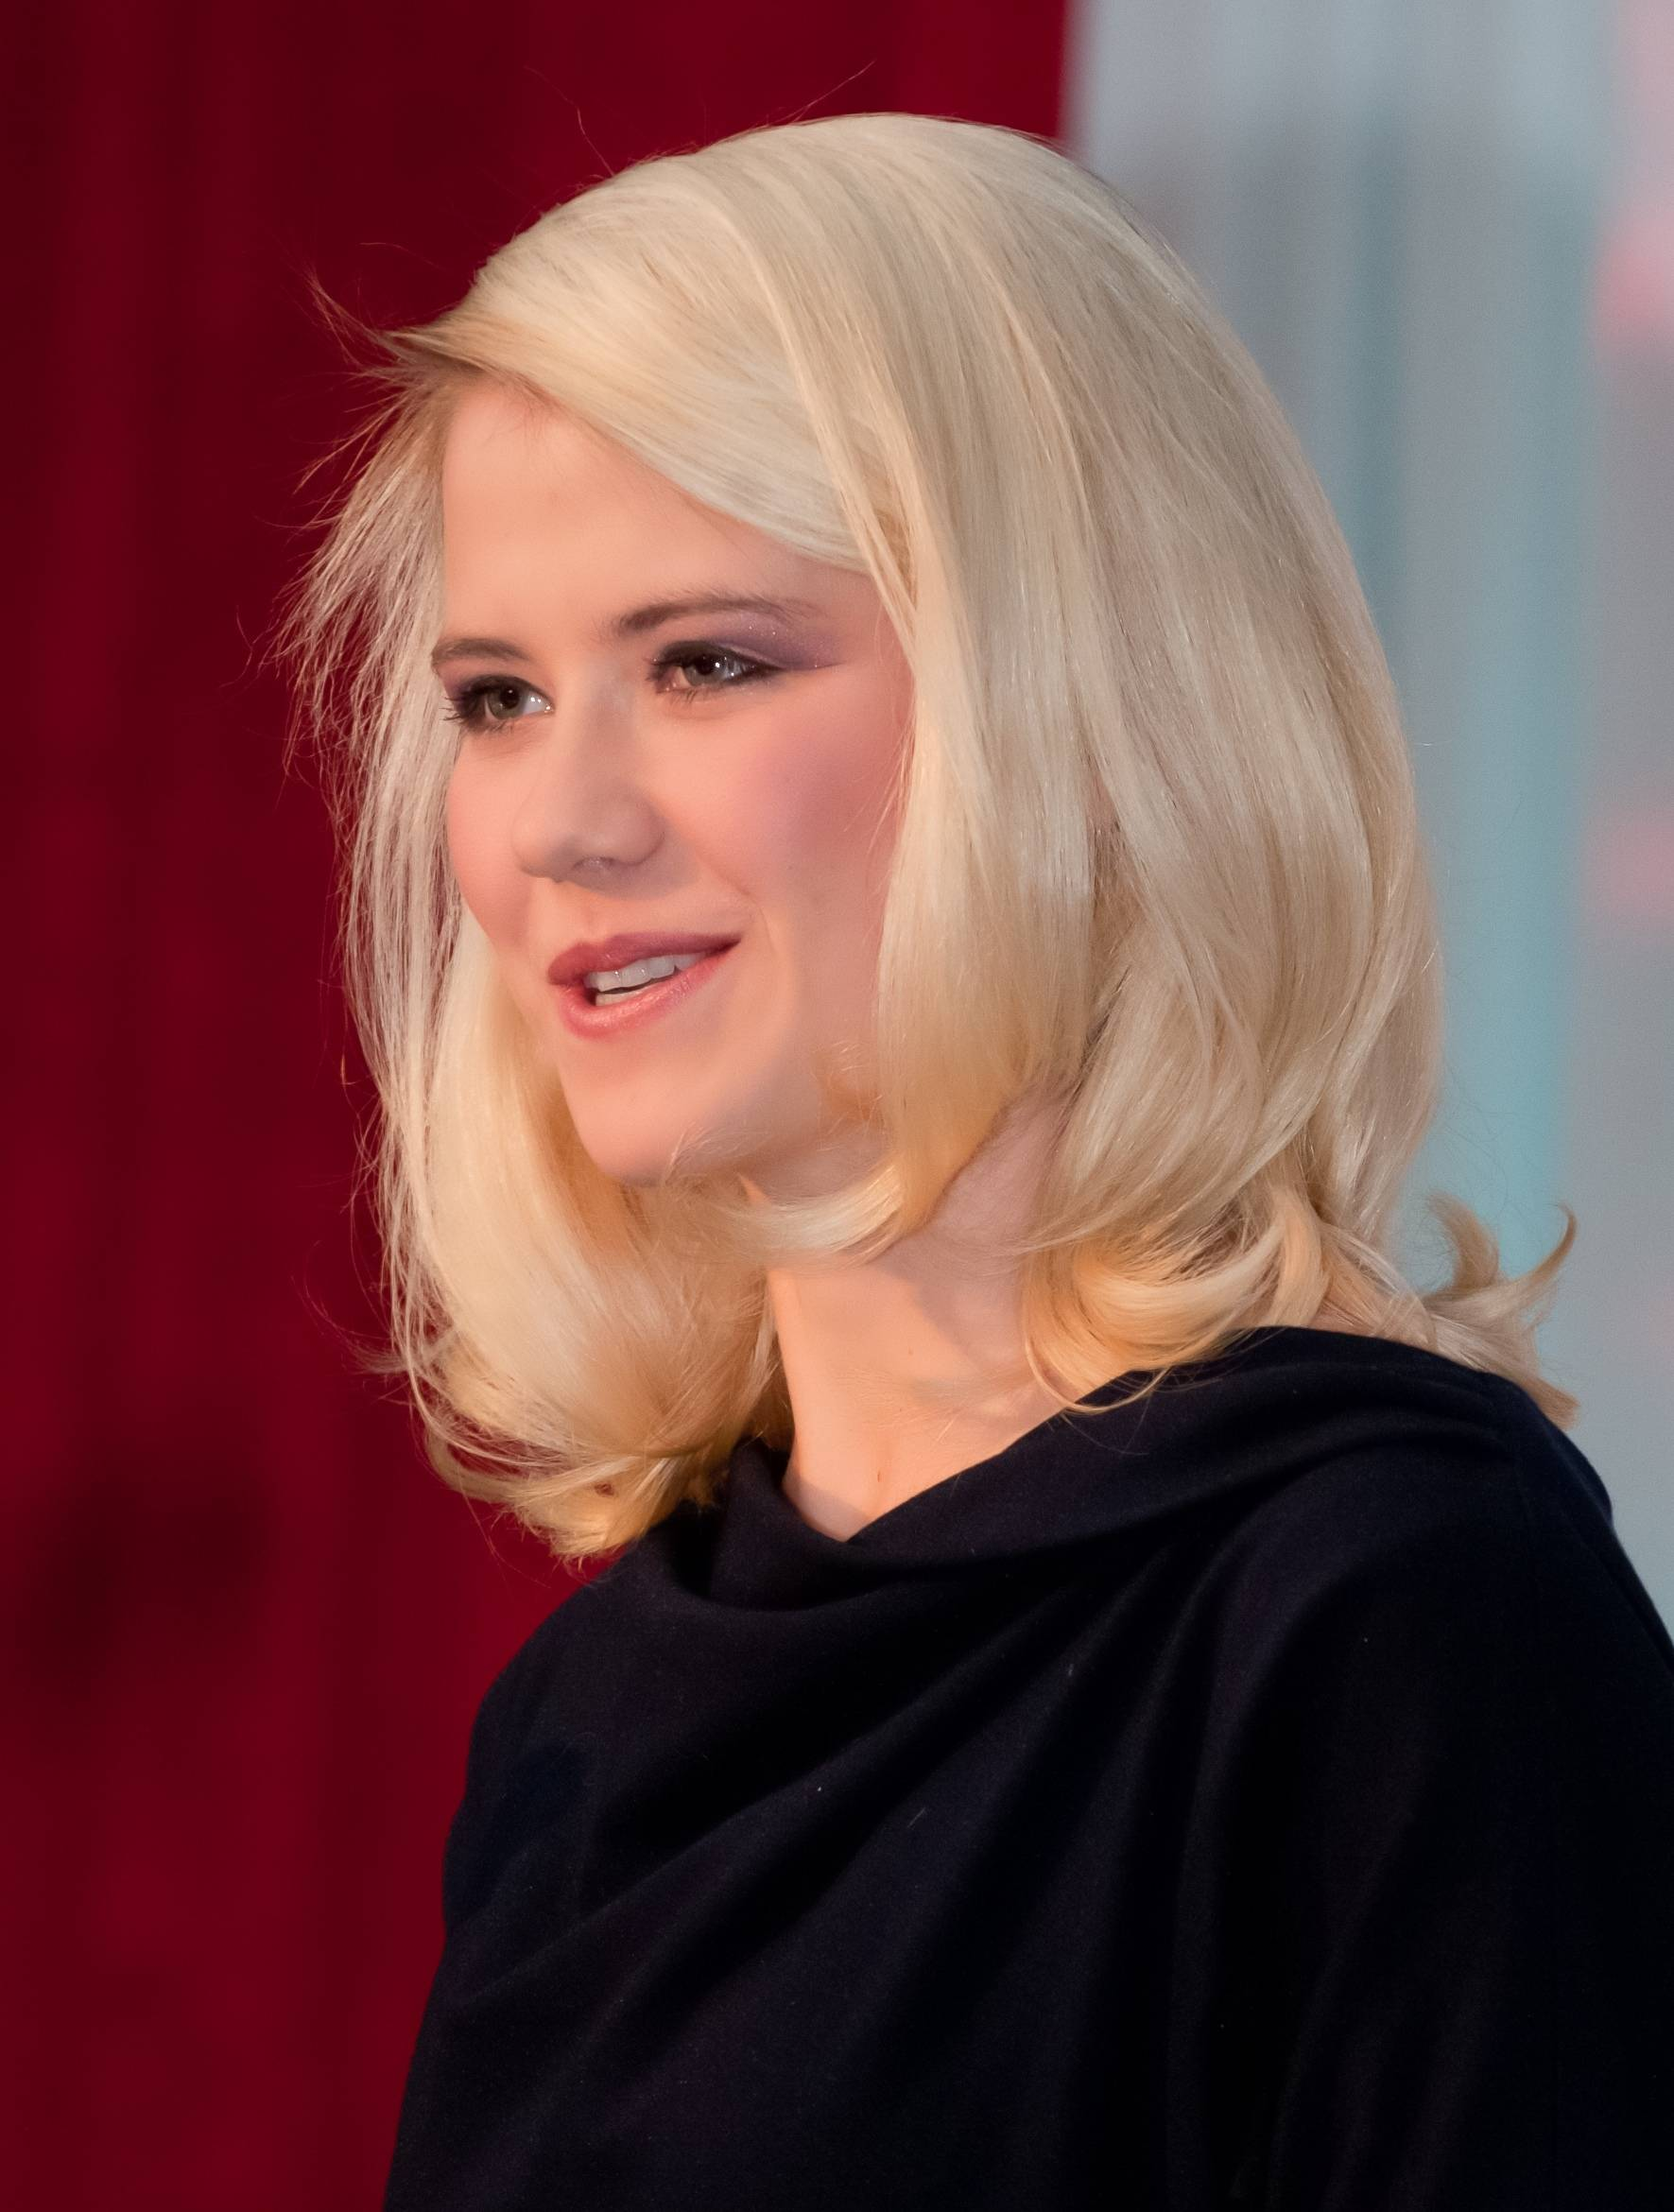 Abduction survivor Elizabeth Smart will speak at Vista's Healthy Woman Dinner on Oct. 4.